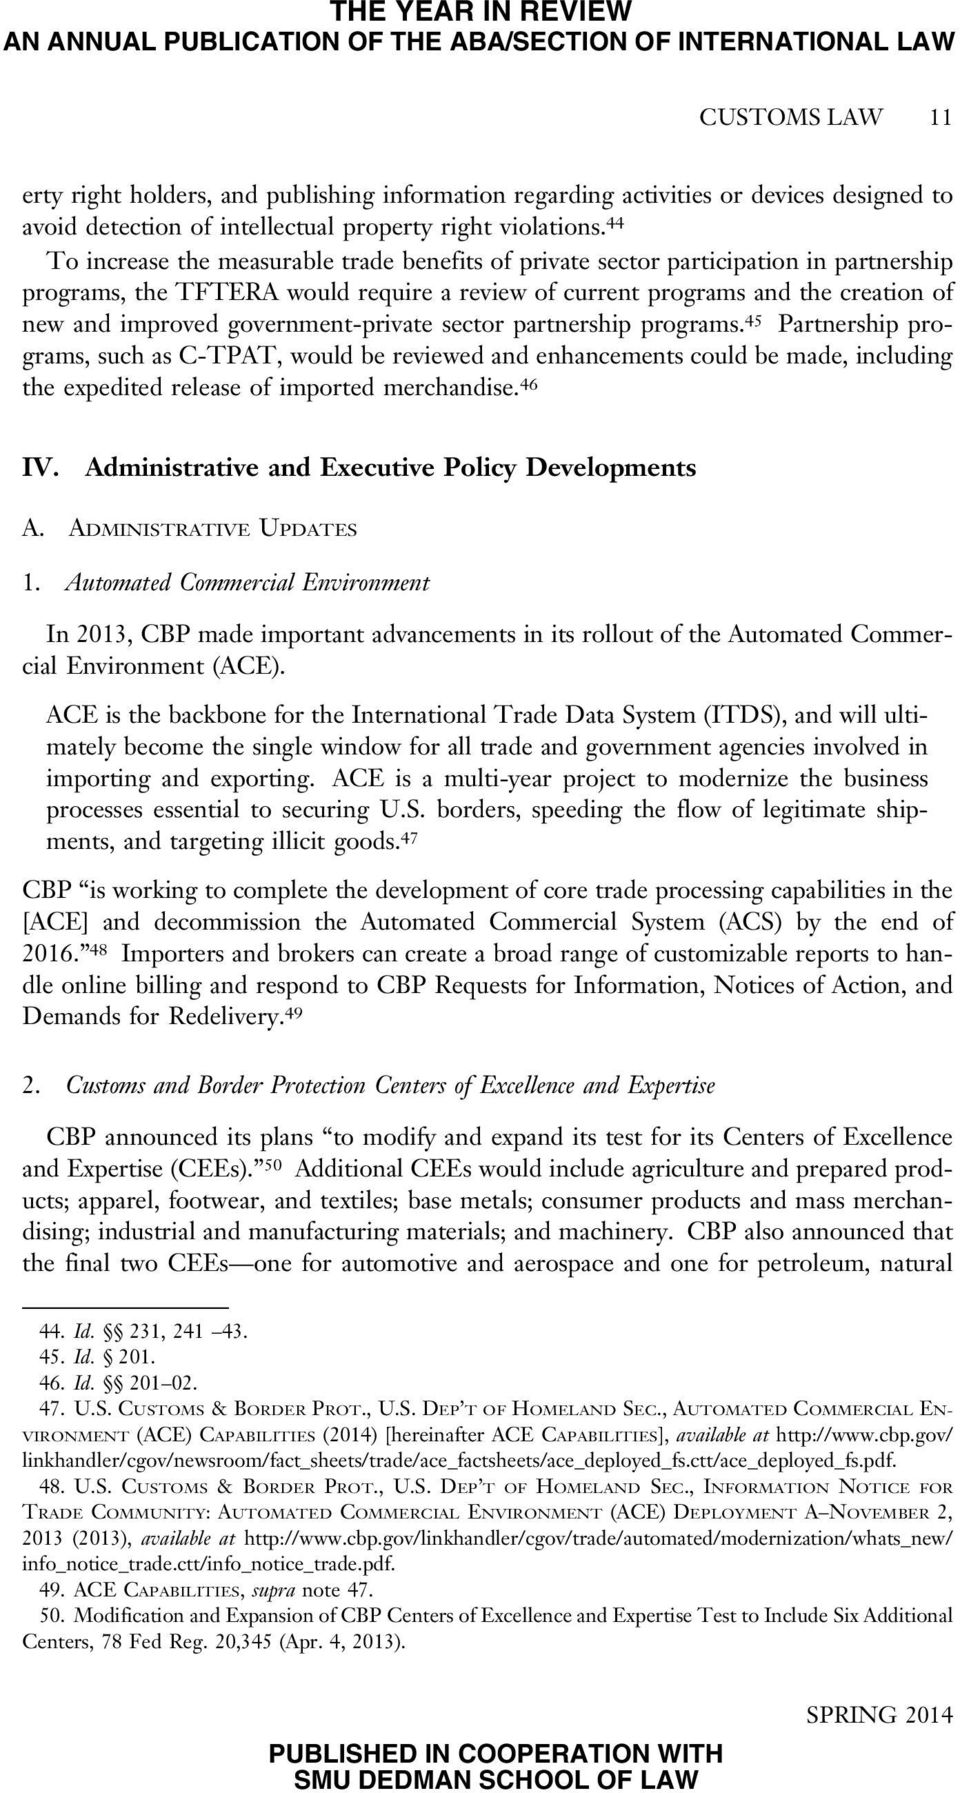 government-private sector partnership programs. 45 Partnership programs, such as C-TPAT, would be reviewed and enhancements could be made, including the expedited release of imported merchandise.